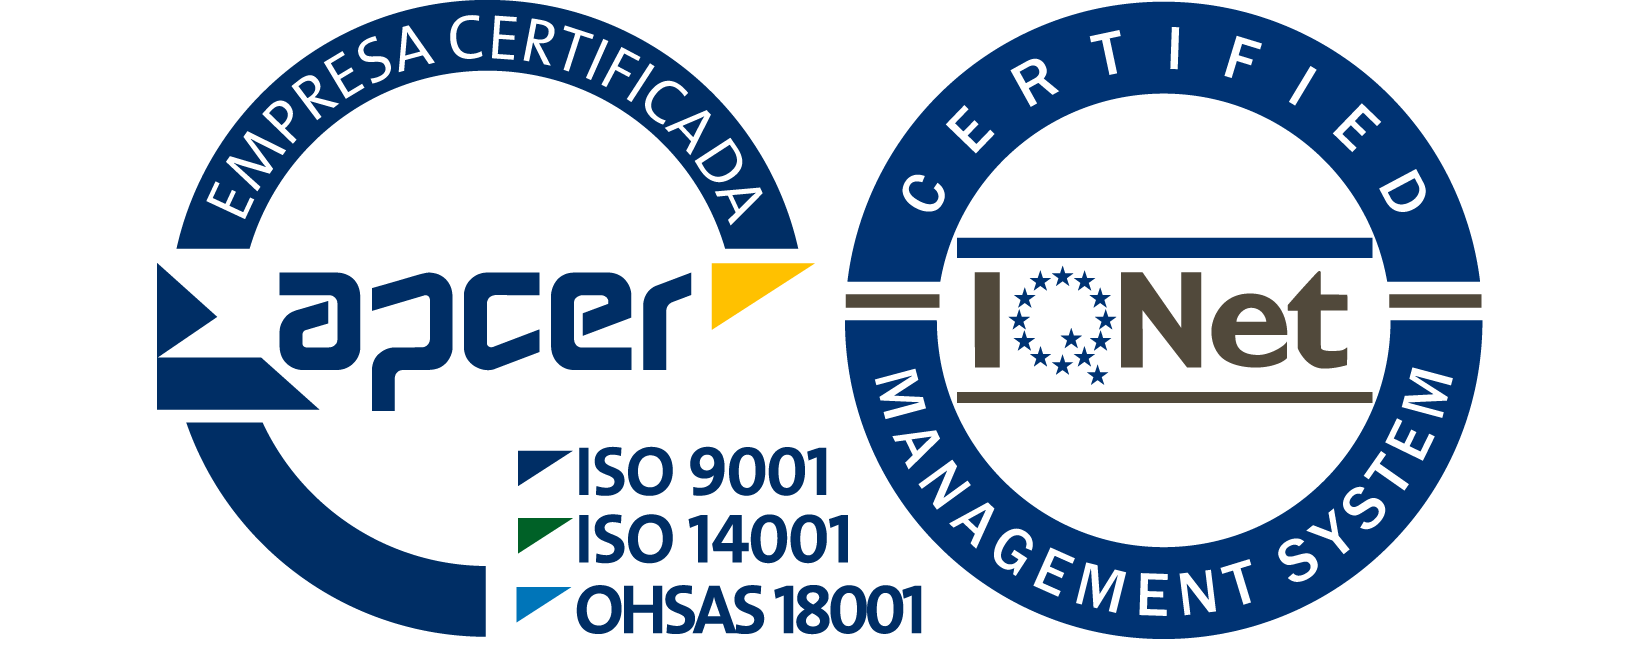 Pt Certifications - Apcer, Transparent background PNG HD thumbnail